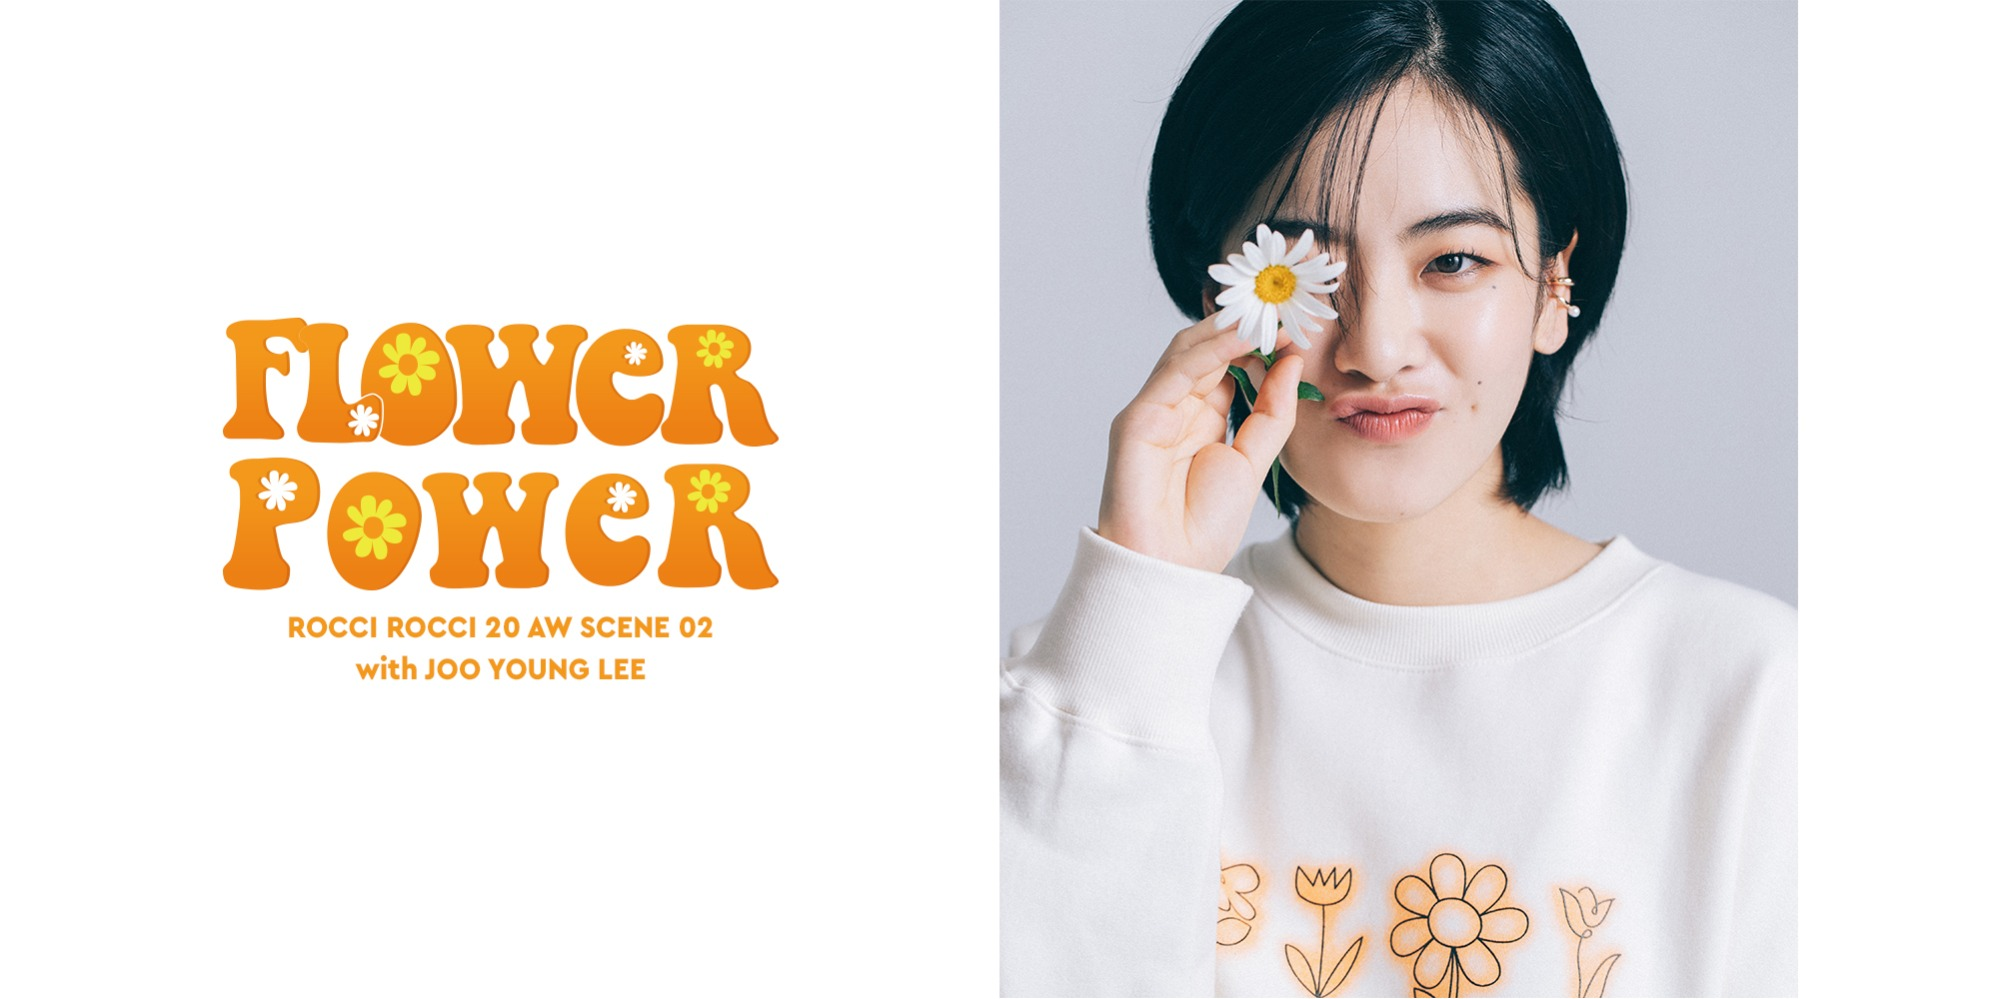 20 AW COLLECTION. FLOWER POWER #SCENE JOO YOUNG LEE20 AW COLLECTION. FLOWER POWER #SCENE JOO YOUNG LEE자체브랜드